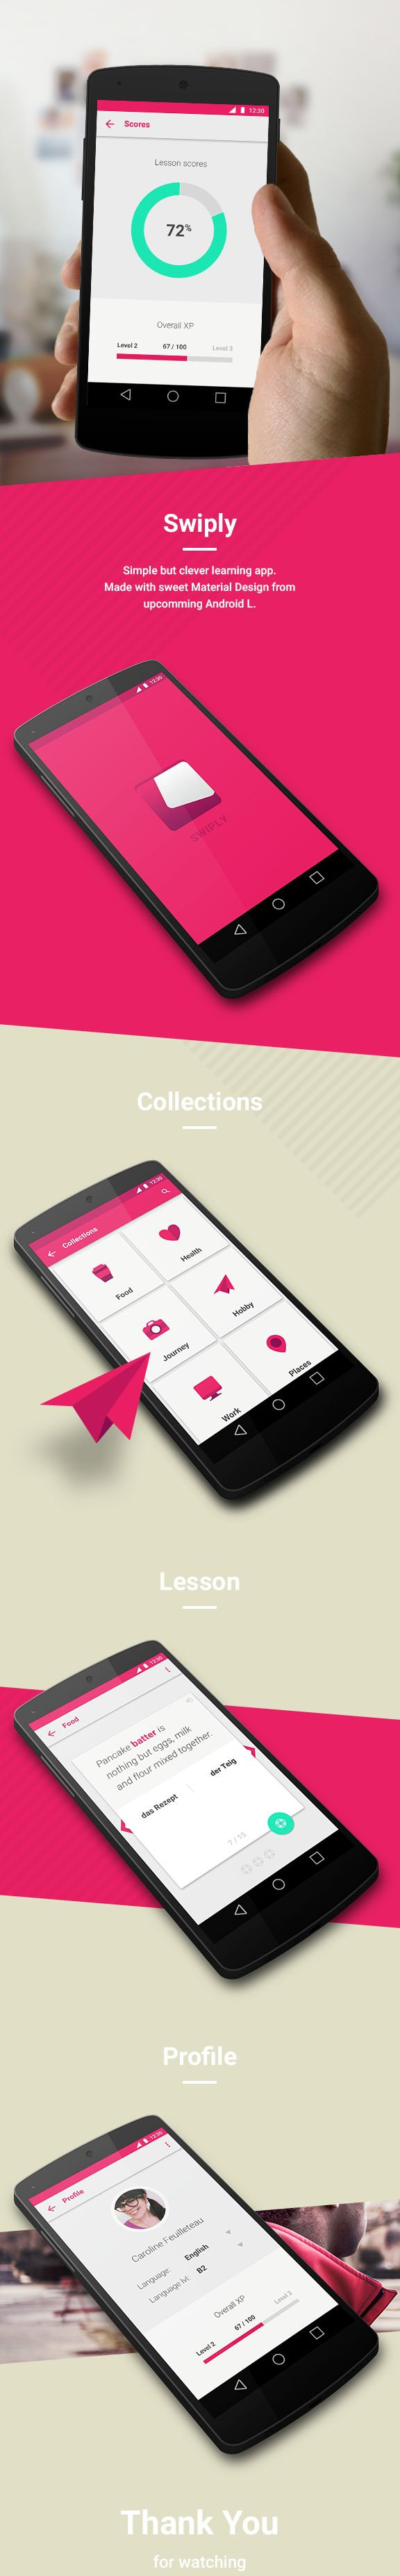 Swiply - Learning App ANDROID L by Piotr Radziwon, via Behance - Material Design